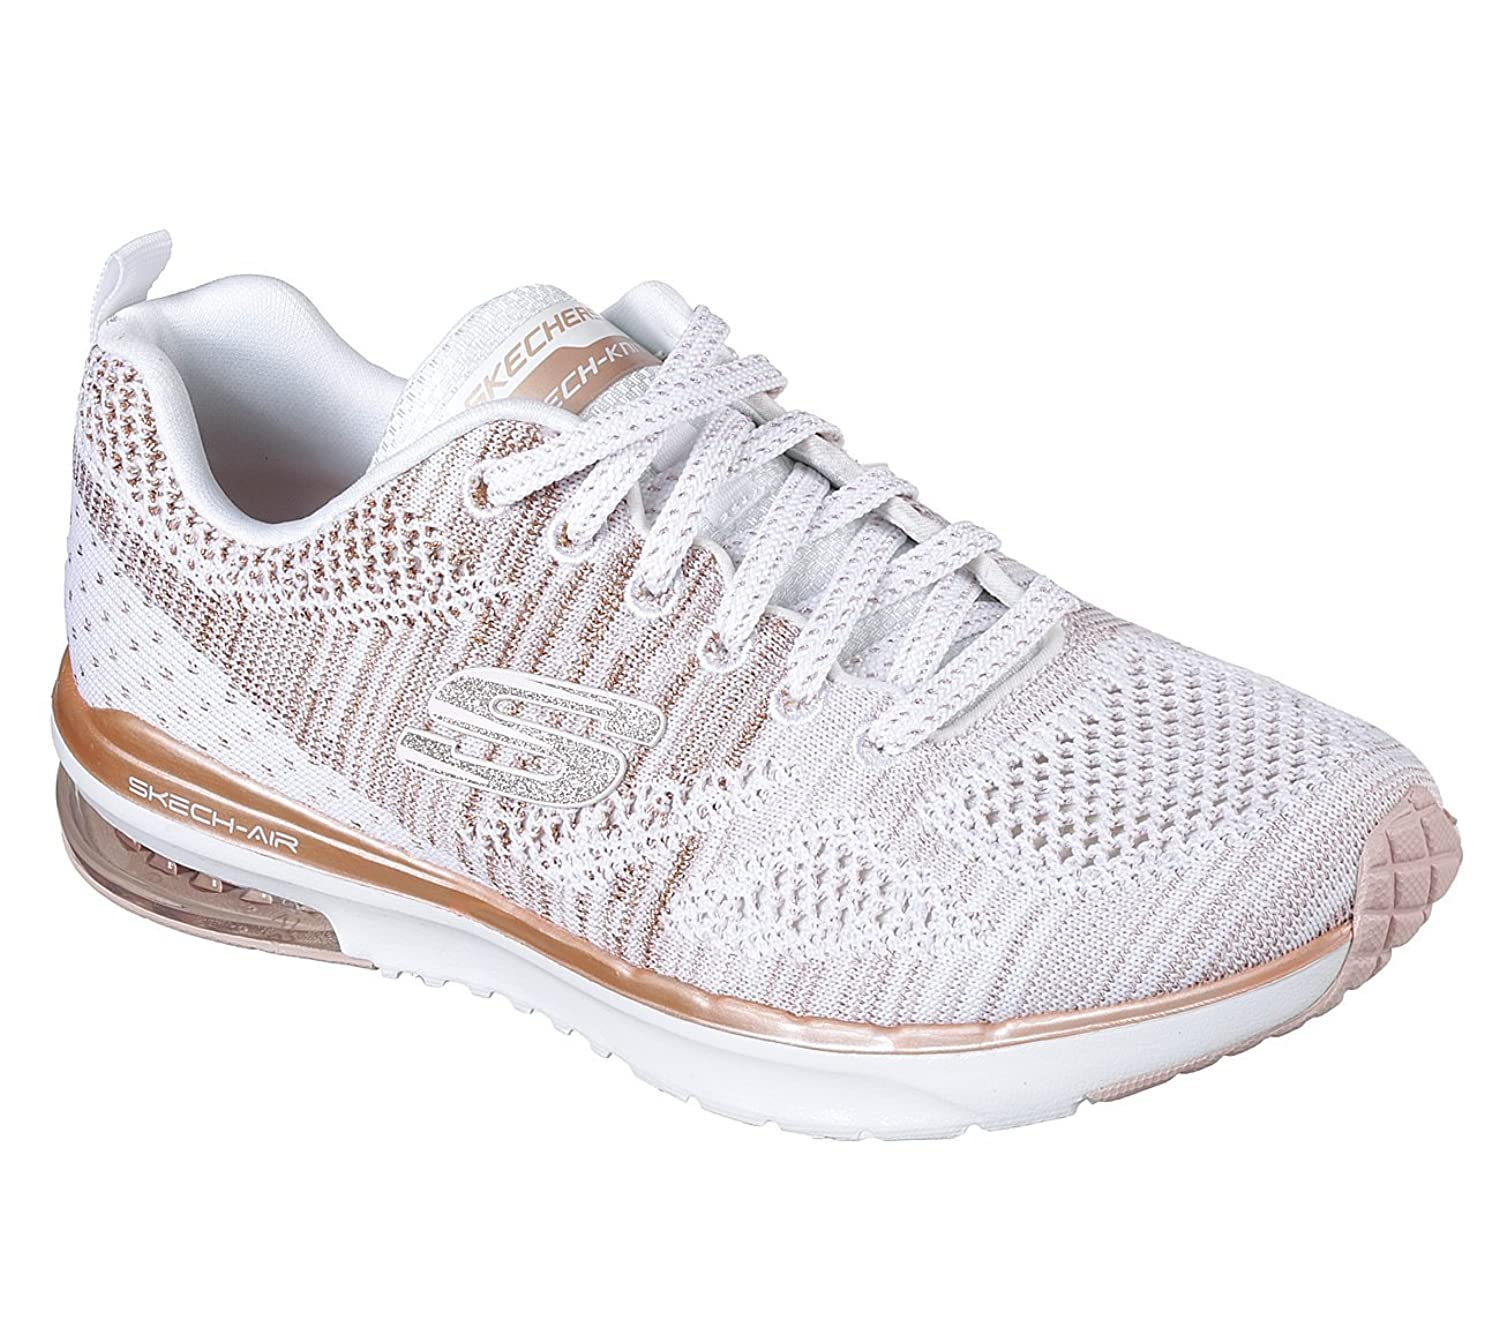 Skechers Skech-Air Infinity Stand Out 12114WTRG, Deportivas 36 EU